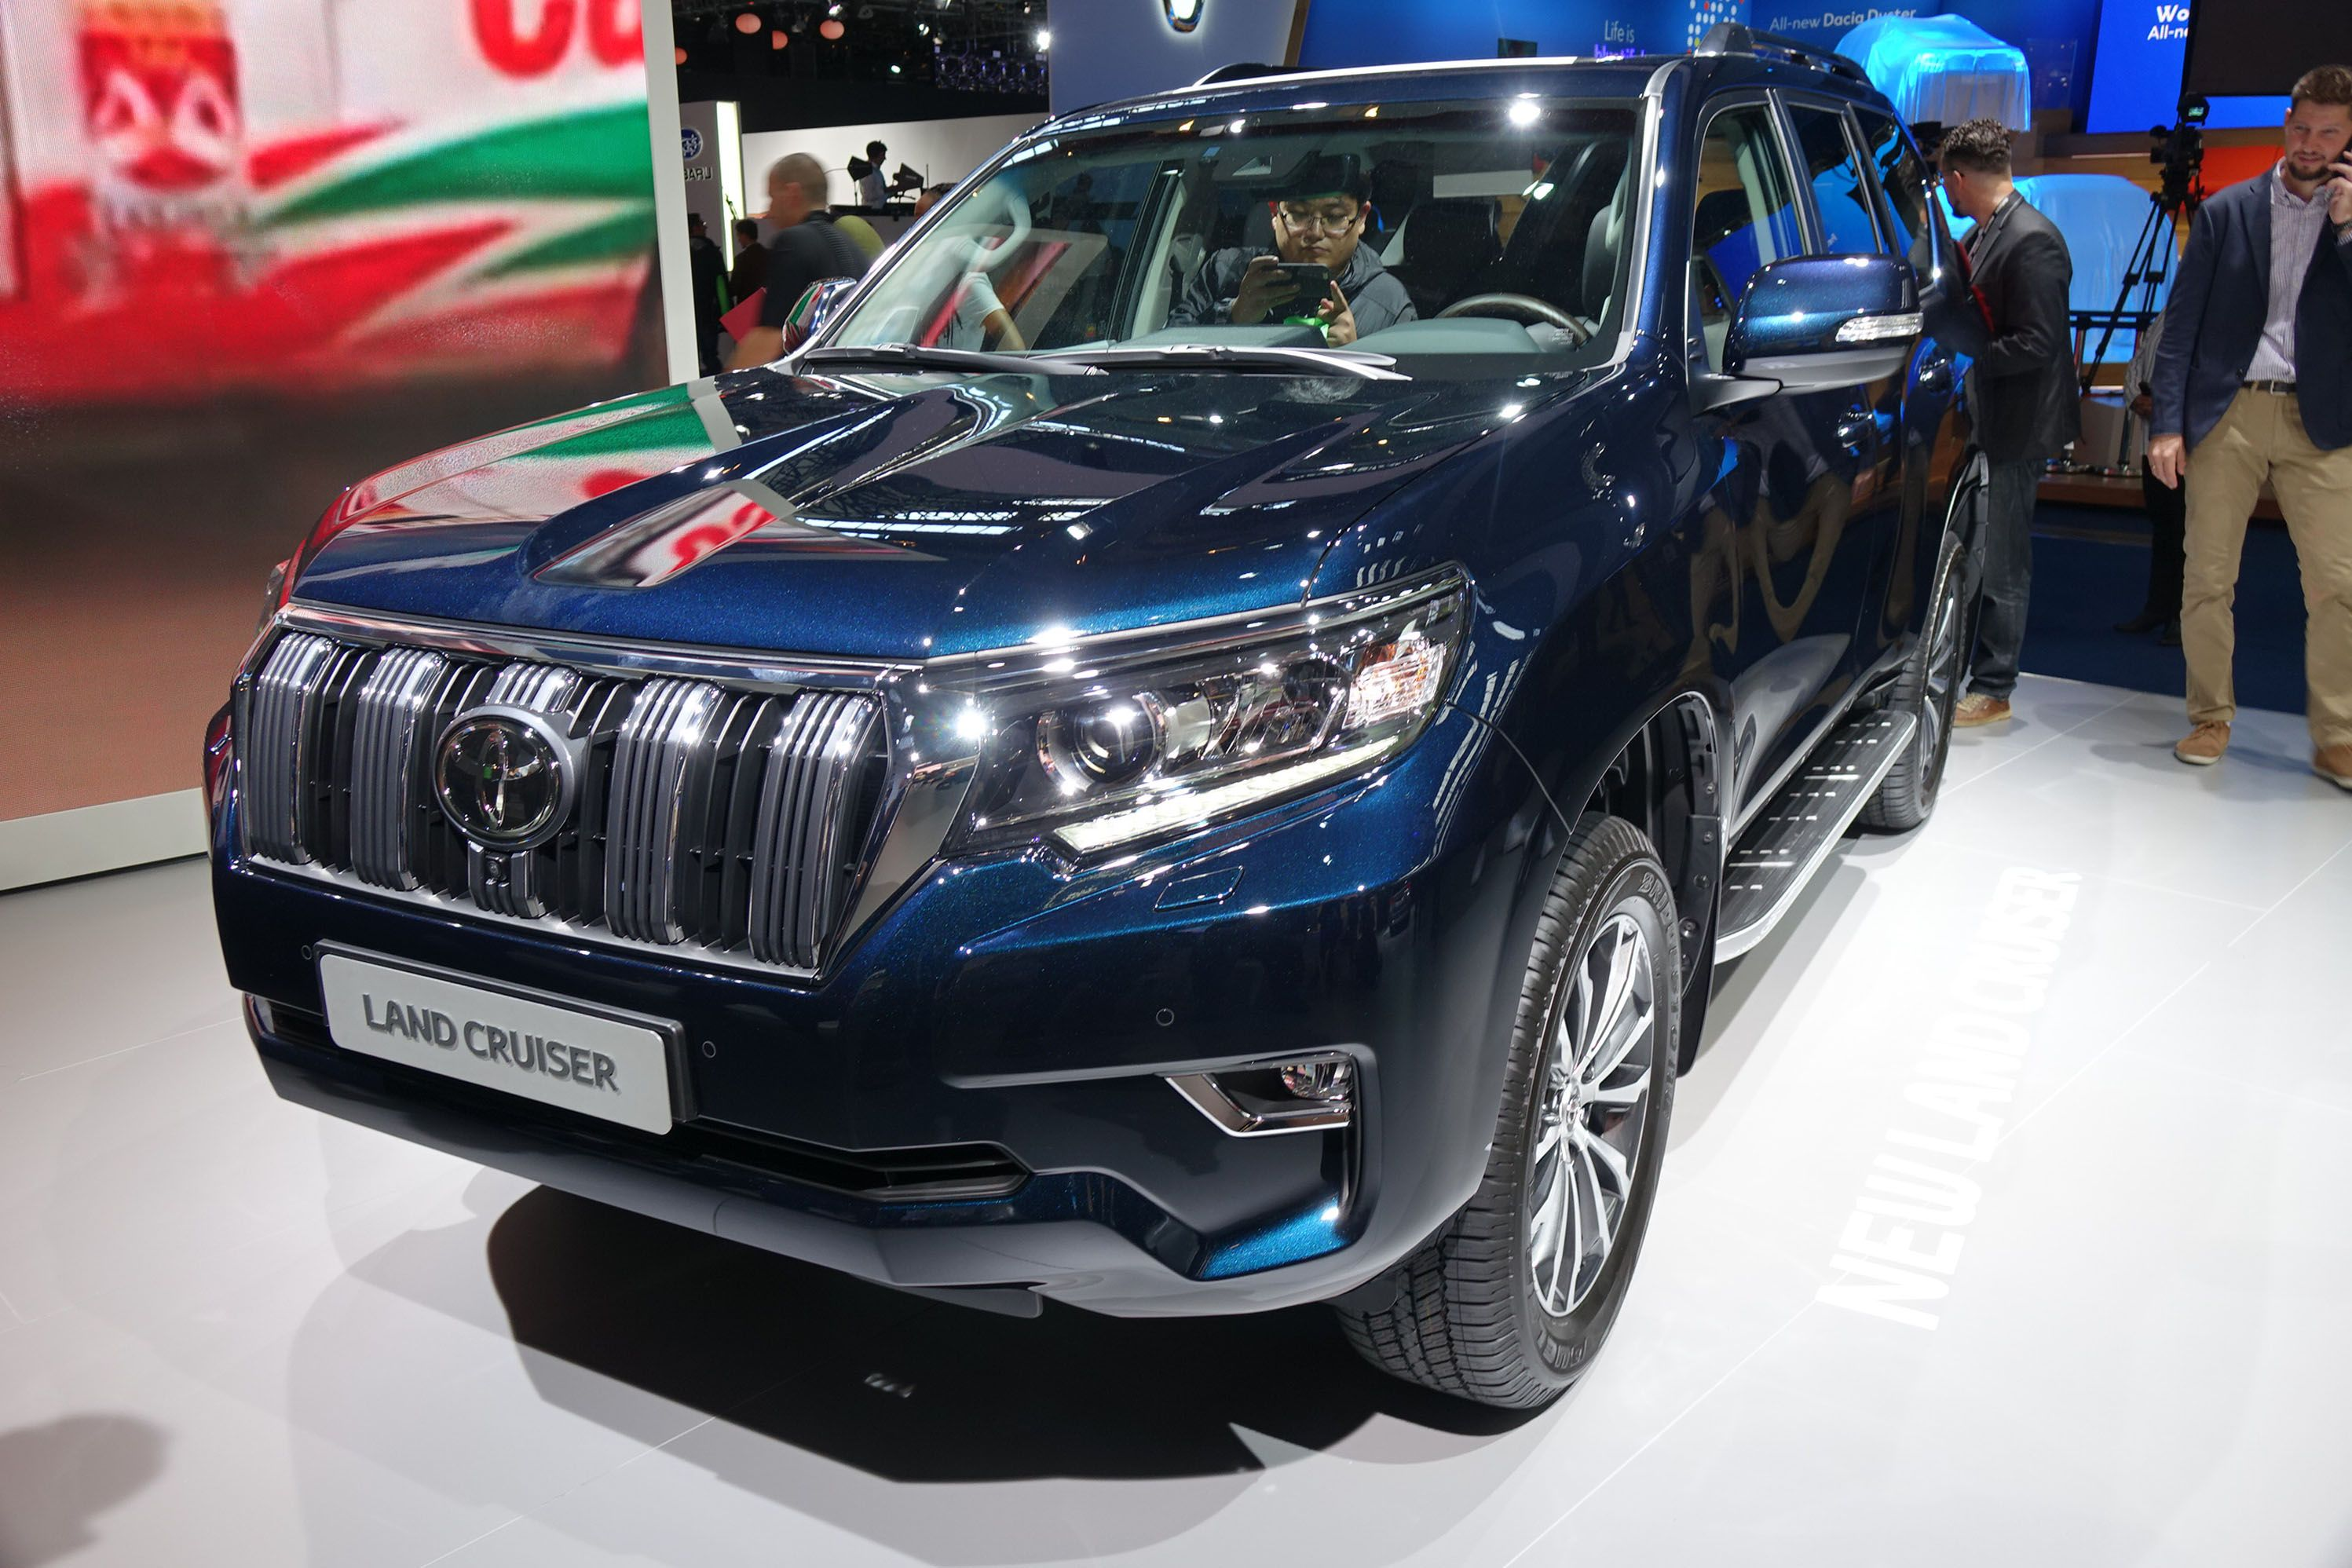 Toyota Land Cruiser Prado Made More Refined The Toyota Land Cruiser Has Grown To Become Quite The Toyota Land Cruiser Prado Toyota Land Cruiser Land Cruiser